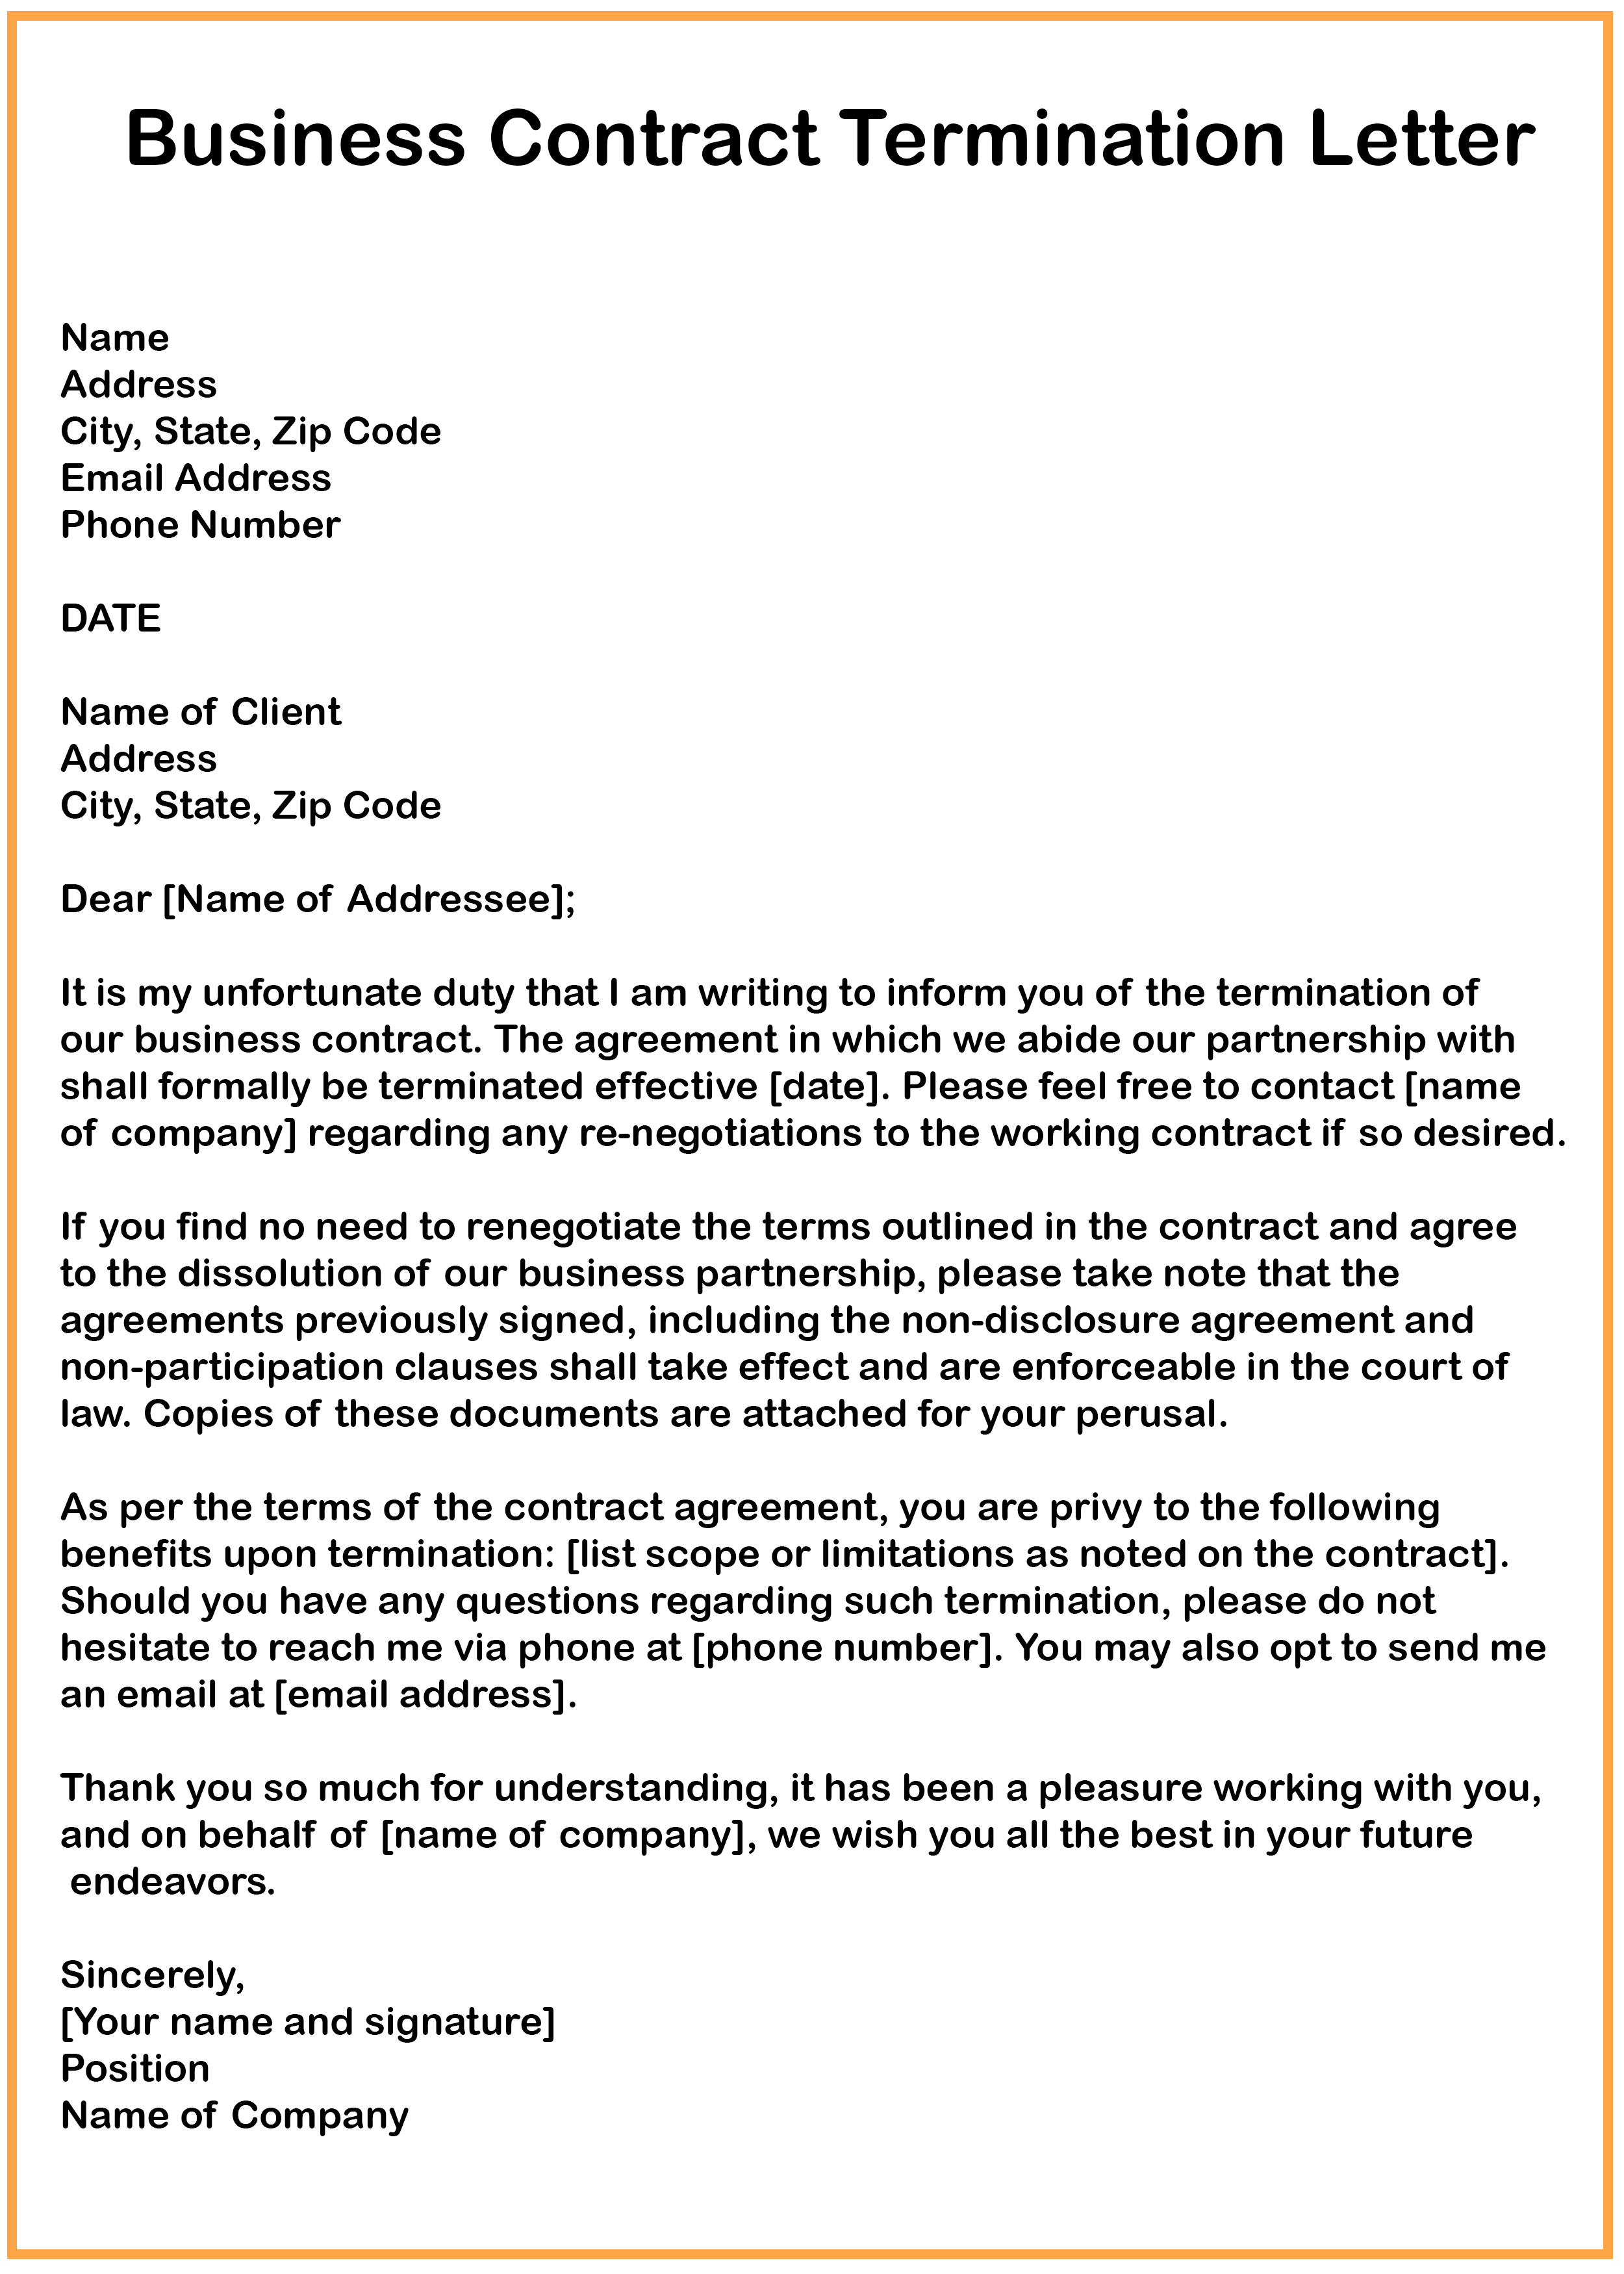 Business Contract Agreement 7 Business Contract Termination Letter Samples How To Wiki